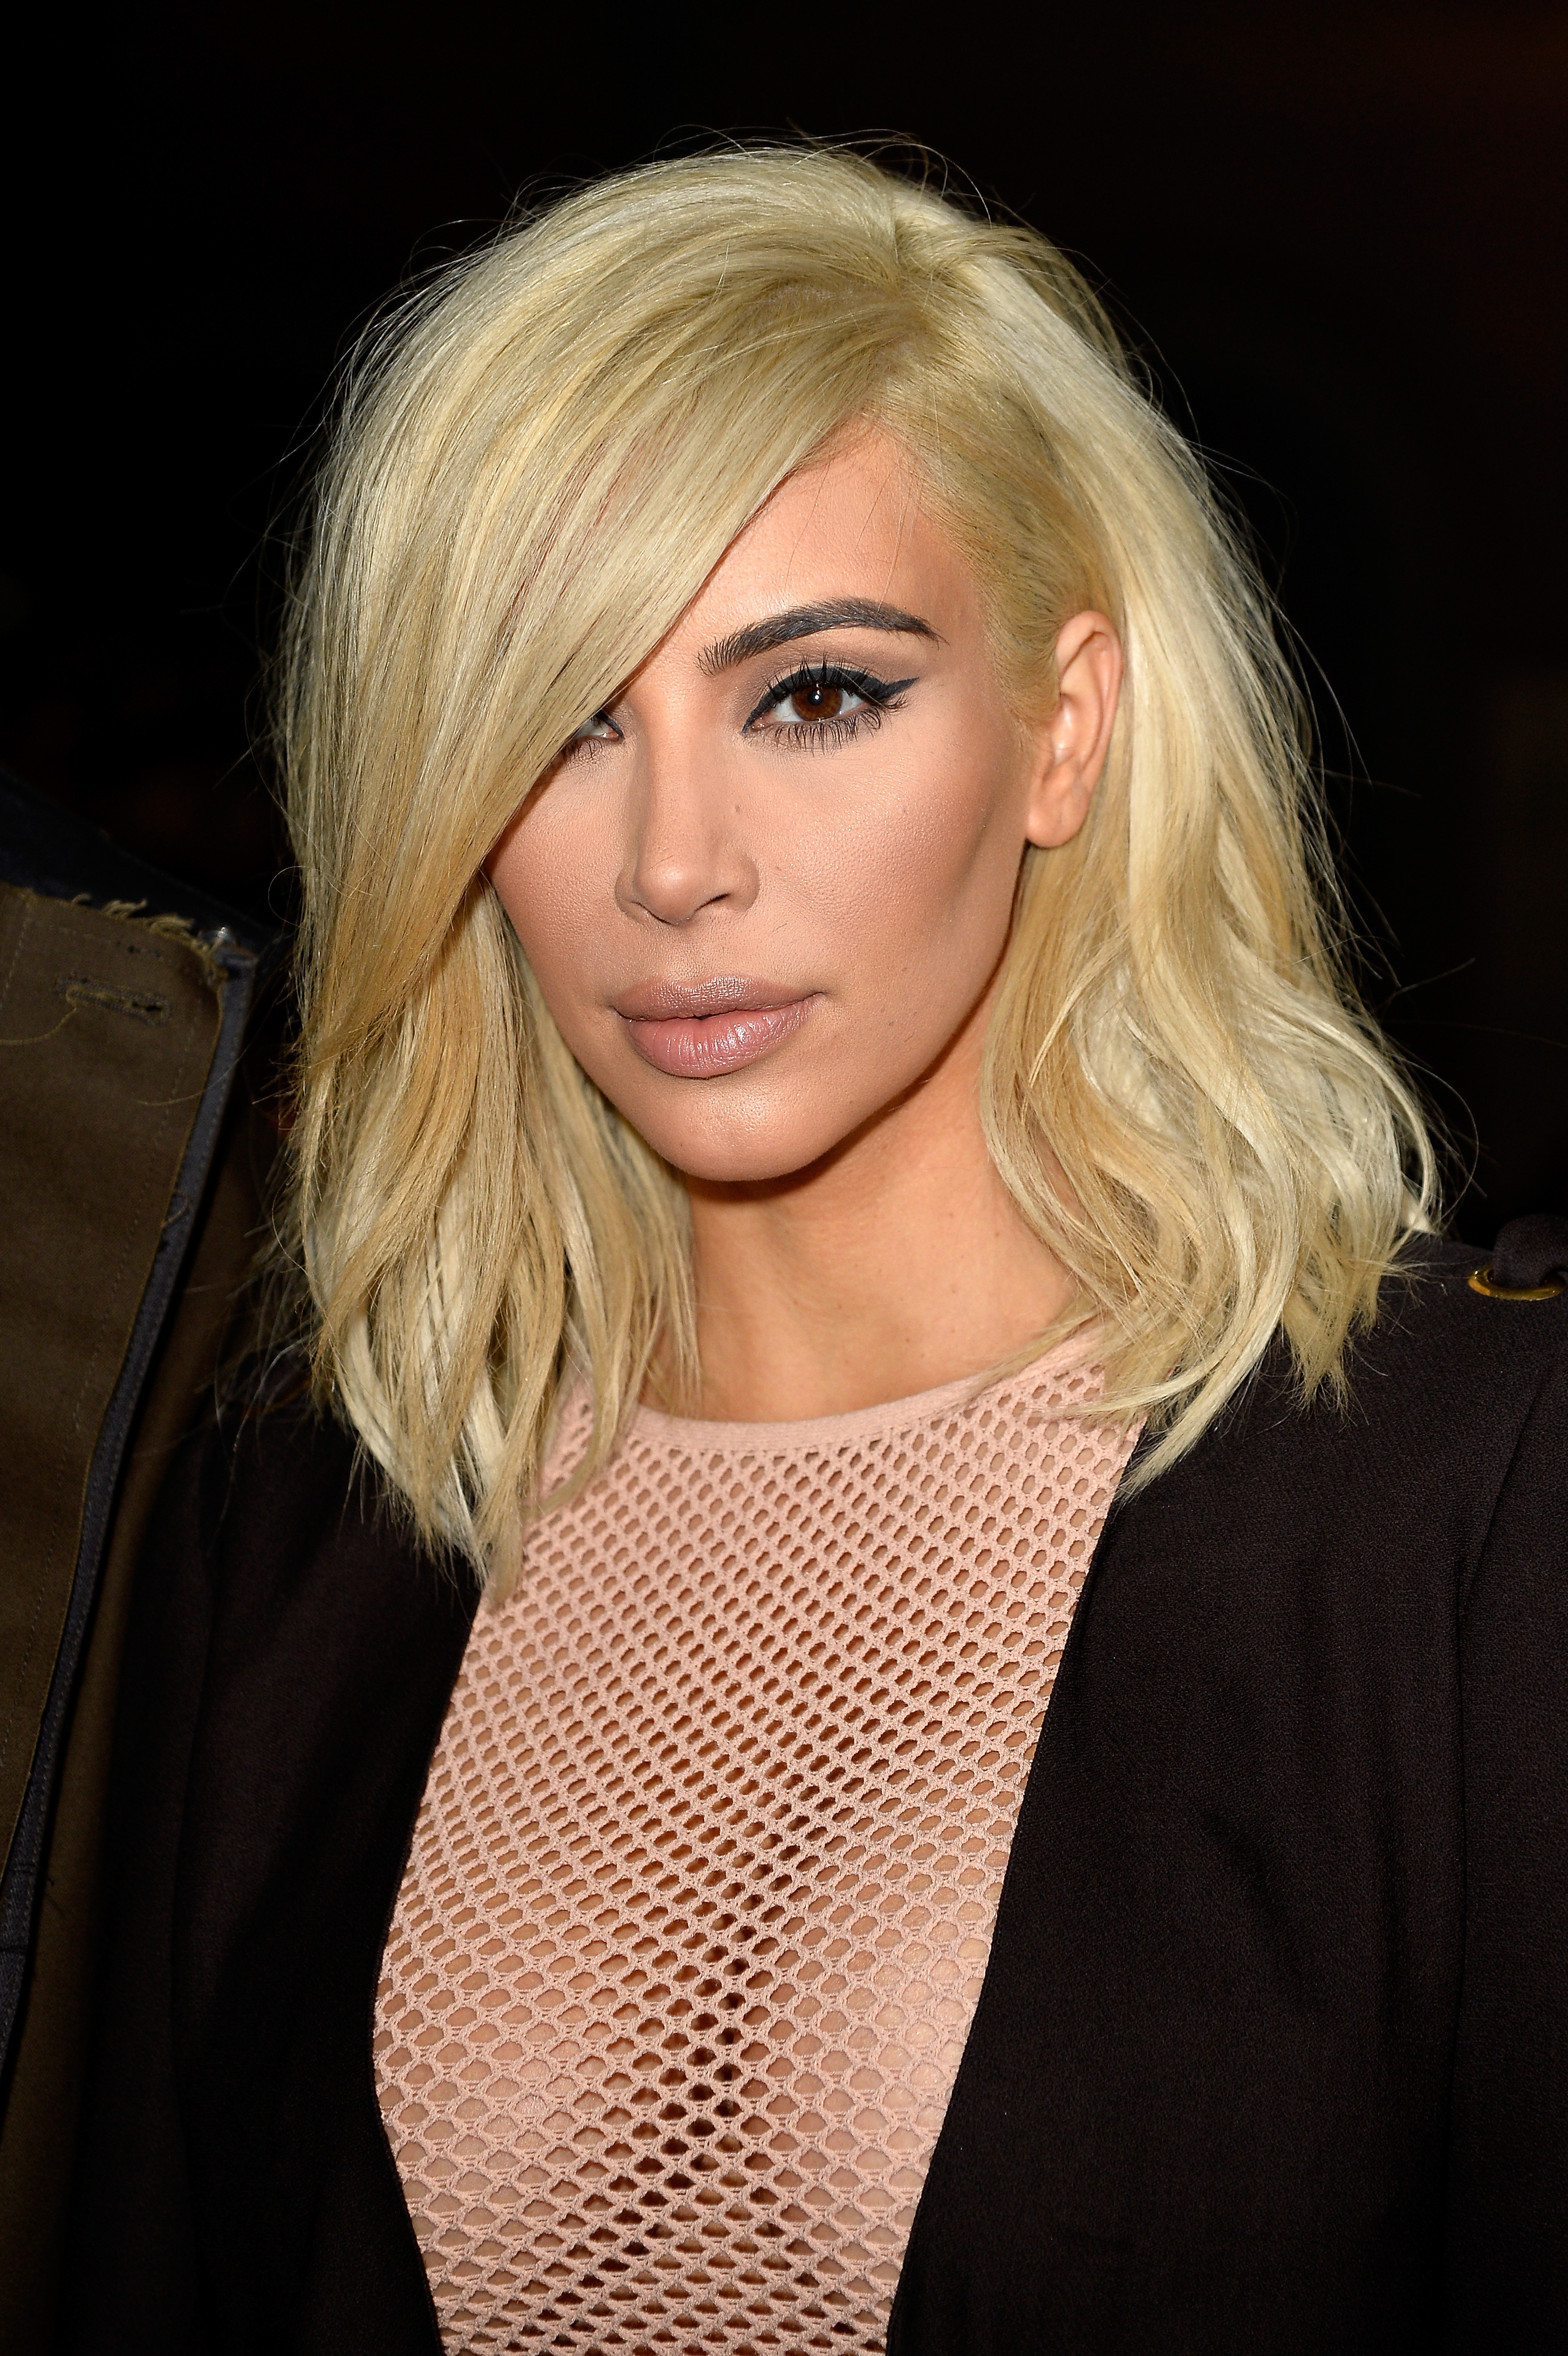 Ms. Kardashian fluffed up her hair sometime between the Balmain and Lanvin shows yesterday (Photo: Getty).